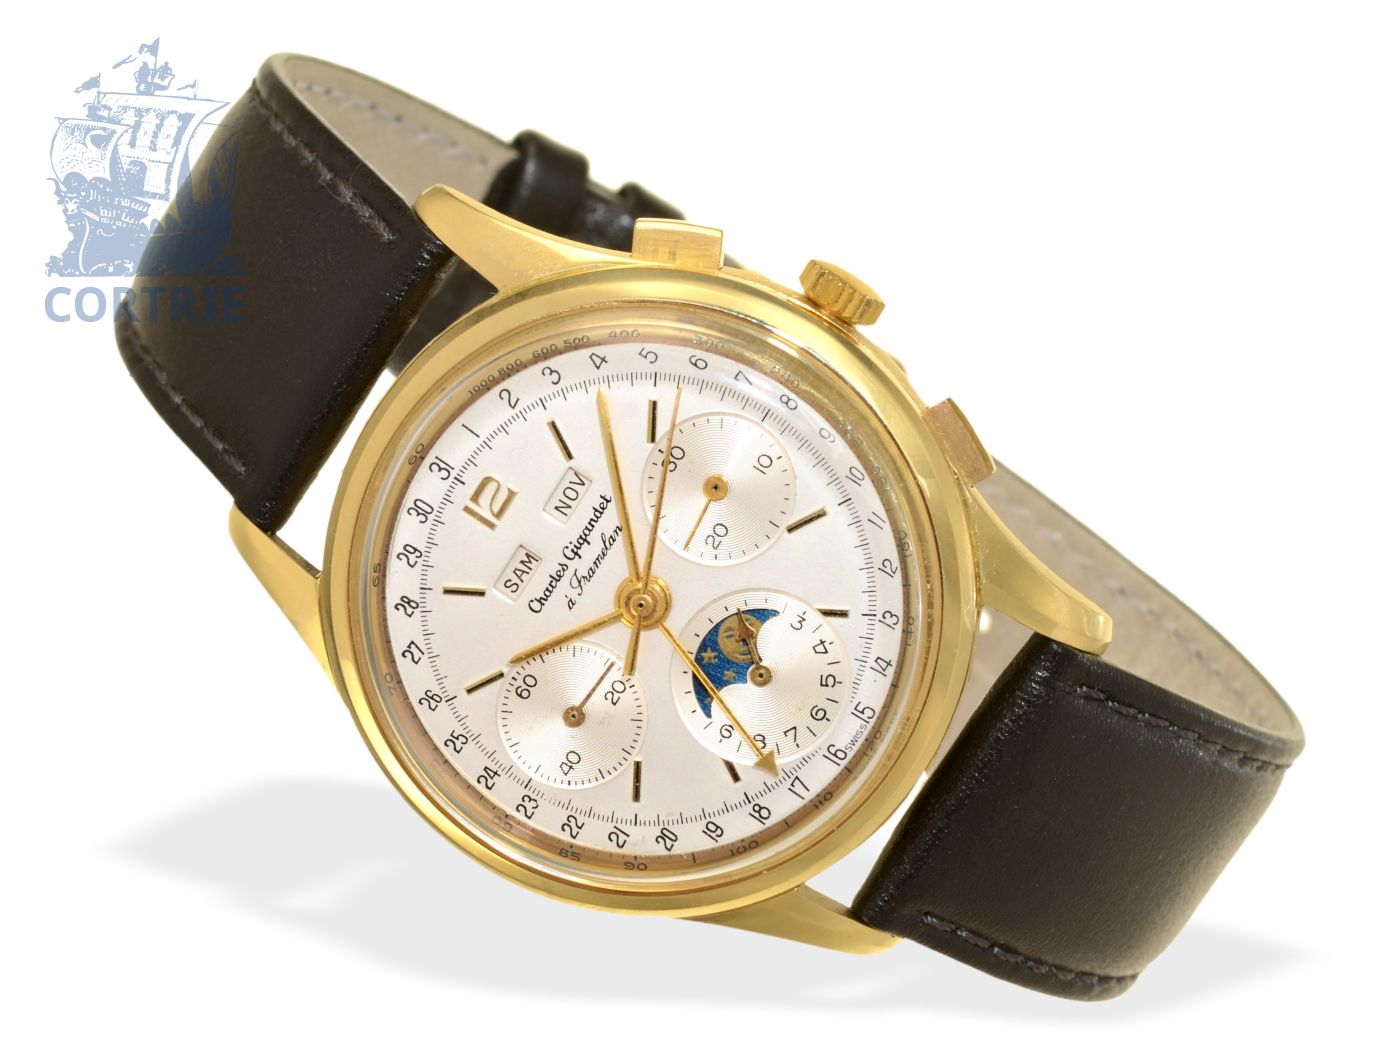 Wristwatch: high-grade 18 K gold chronograph with triple date and moon, Gigandet/Wakmann ca. 1965-